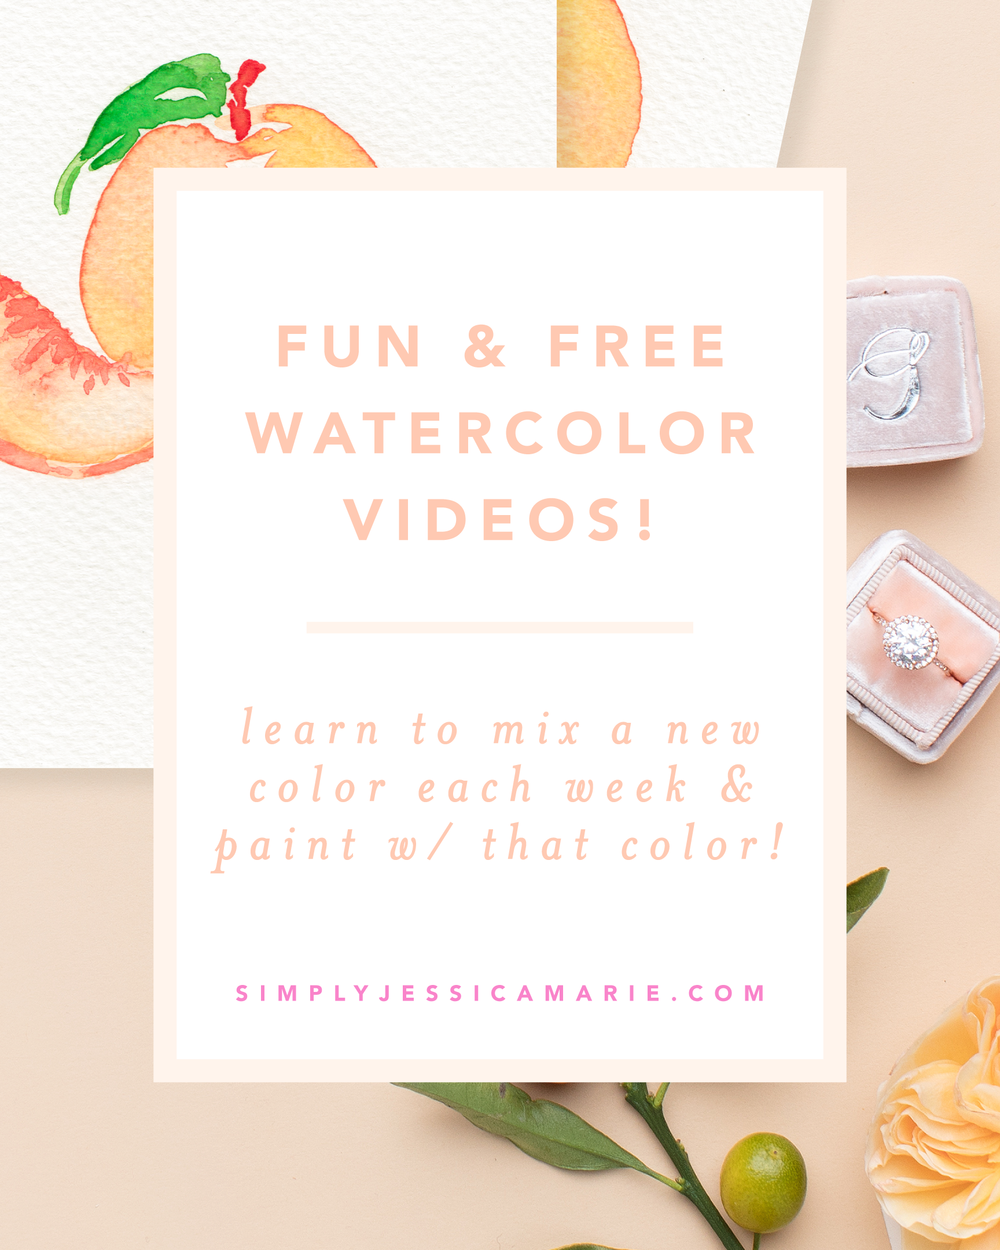 Peaches color cocktails watercolor tutorial series for Learn to paint online